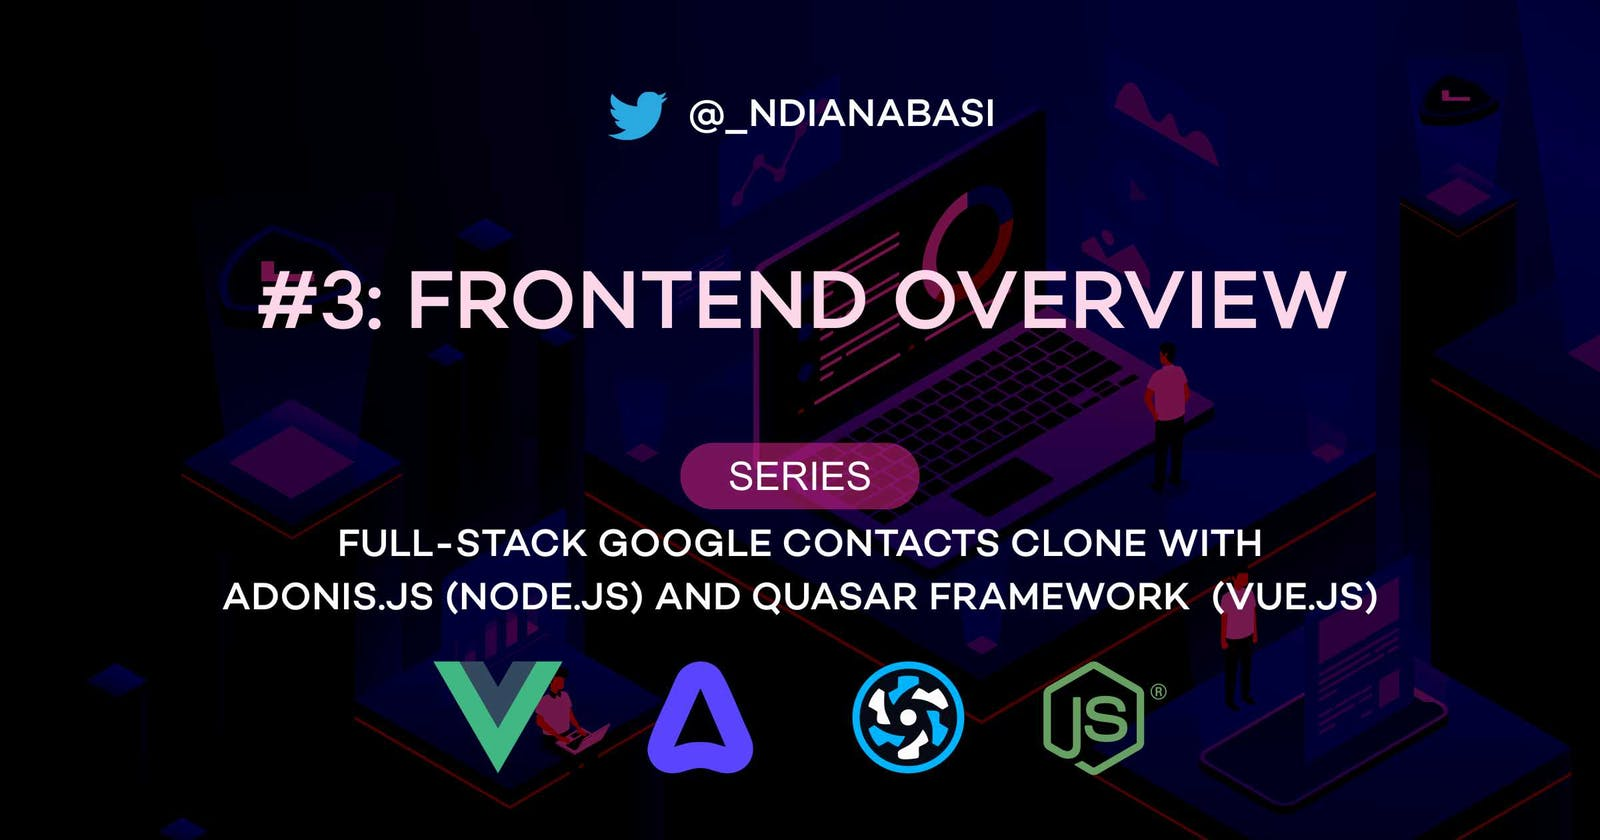 Frontend Overview | Full-Stack Google Contacts Clone with Adonis.js/Node.js and Quasar (Vue.js)